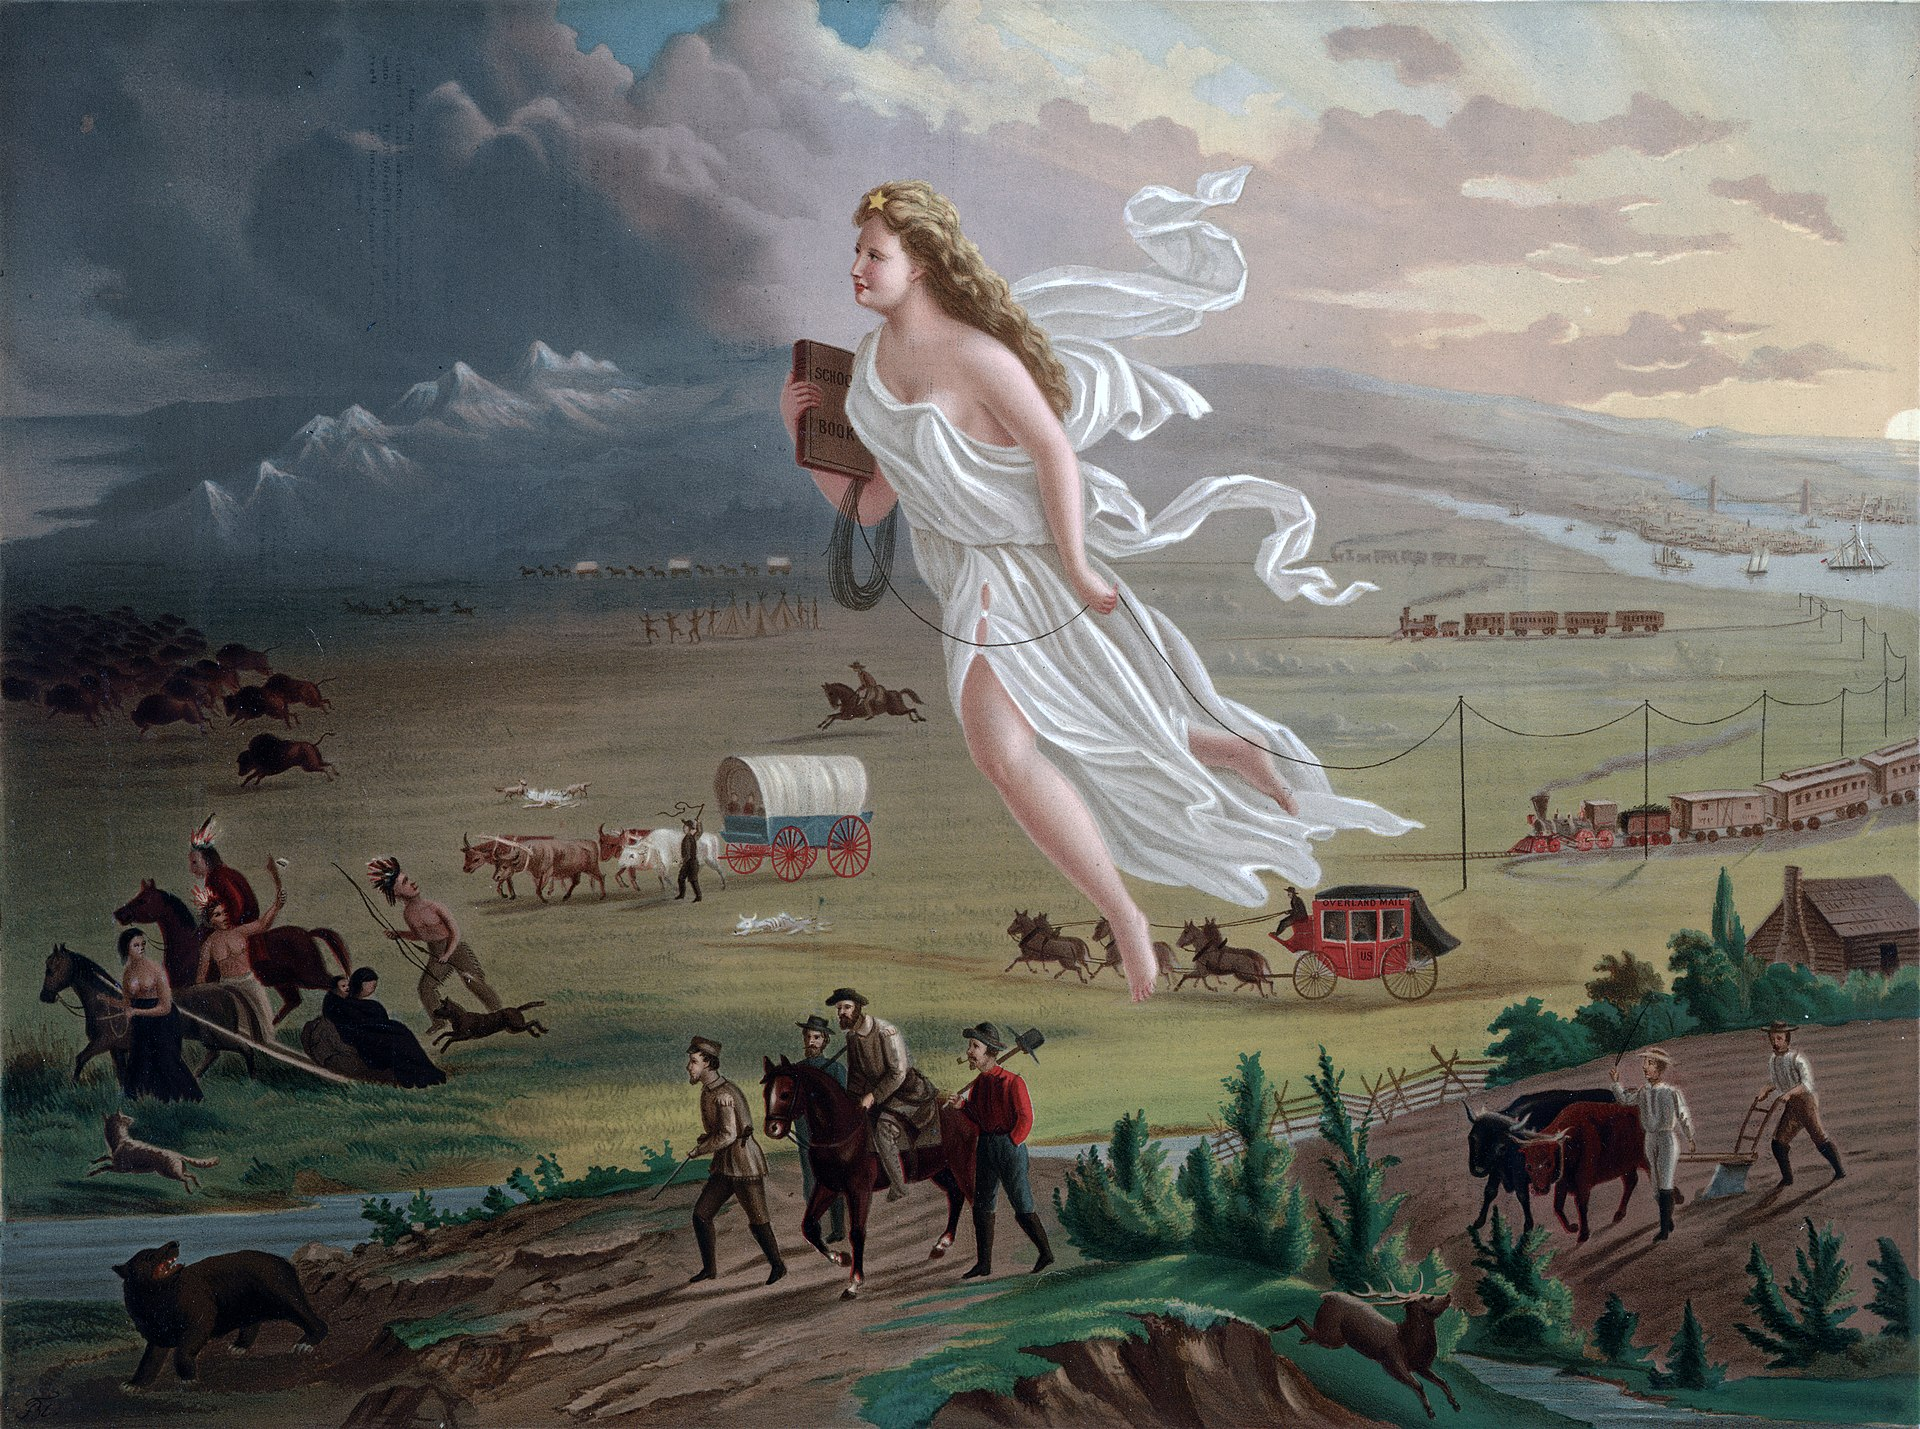 https://upload.wikimedia.org/wikipedia/commons/thumb/f/fd/American_Progress_%28John_Gast_painting%29.jpg/1920px-American_Progress_%28John_Gast_painting%29.jpg